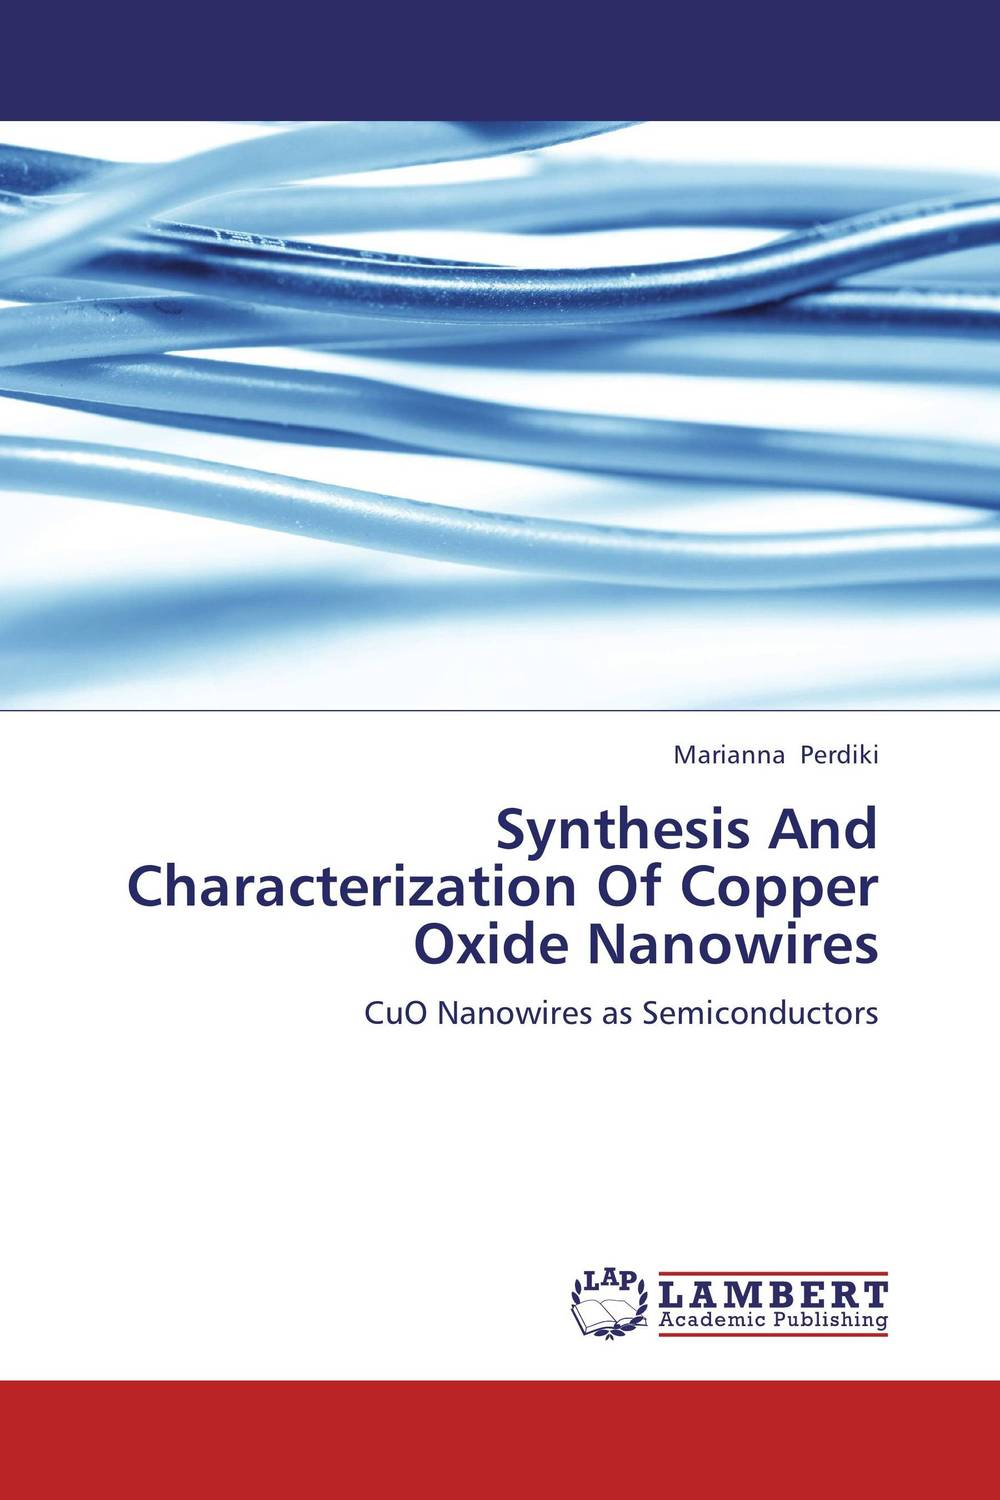 Synthesis And Characterization Of Copper Oxide Nanowires jaspal singh and ravinder pal singh effects of aging temperature and time on synthesis of hydroxyapatite